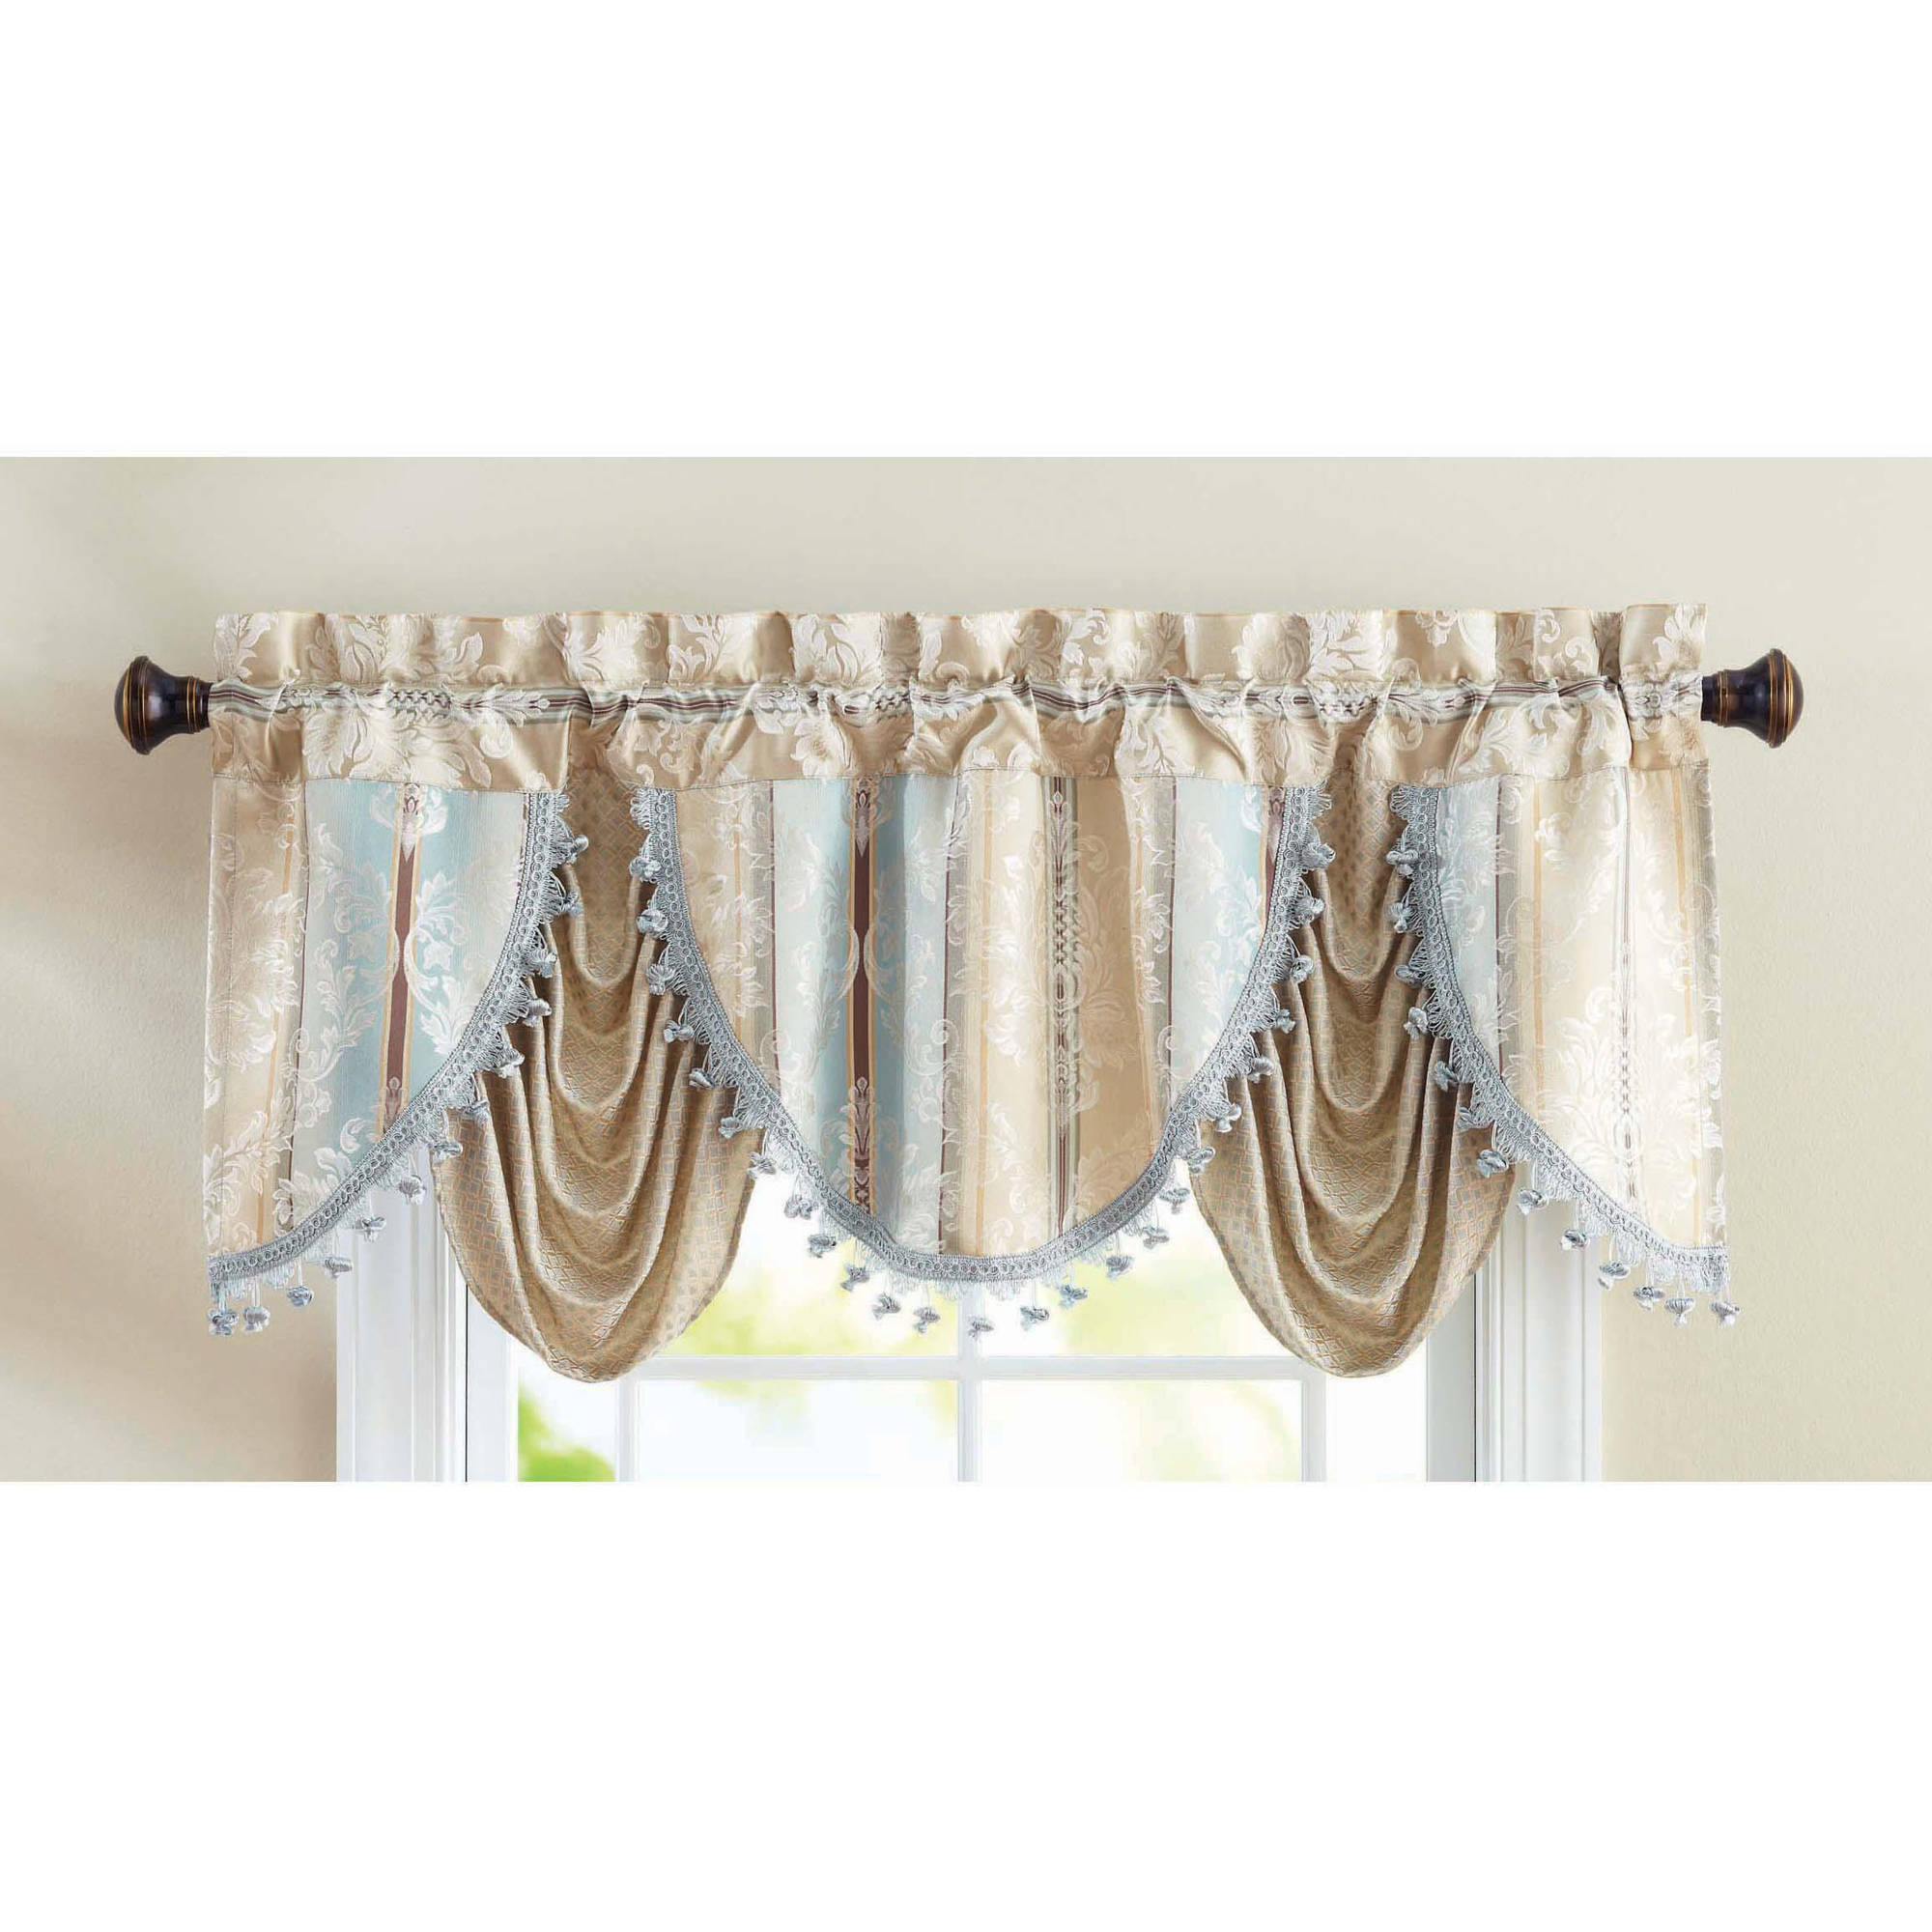 Better Homes and Gardens Formal Swag Valance Walmartcom